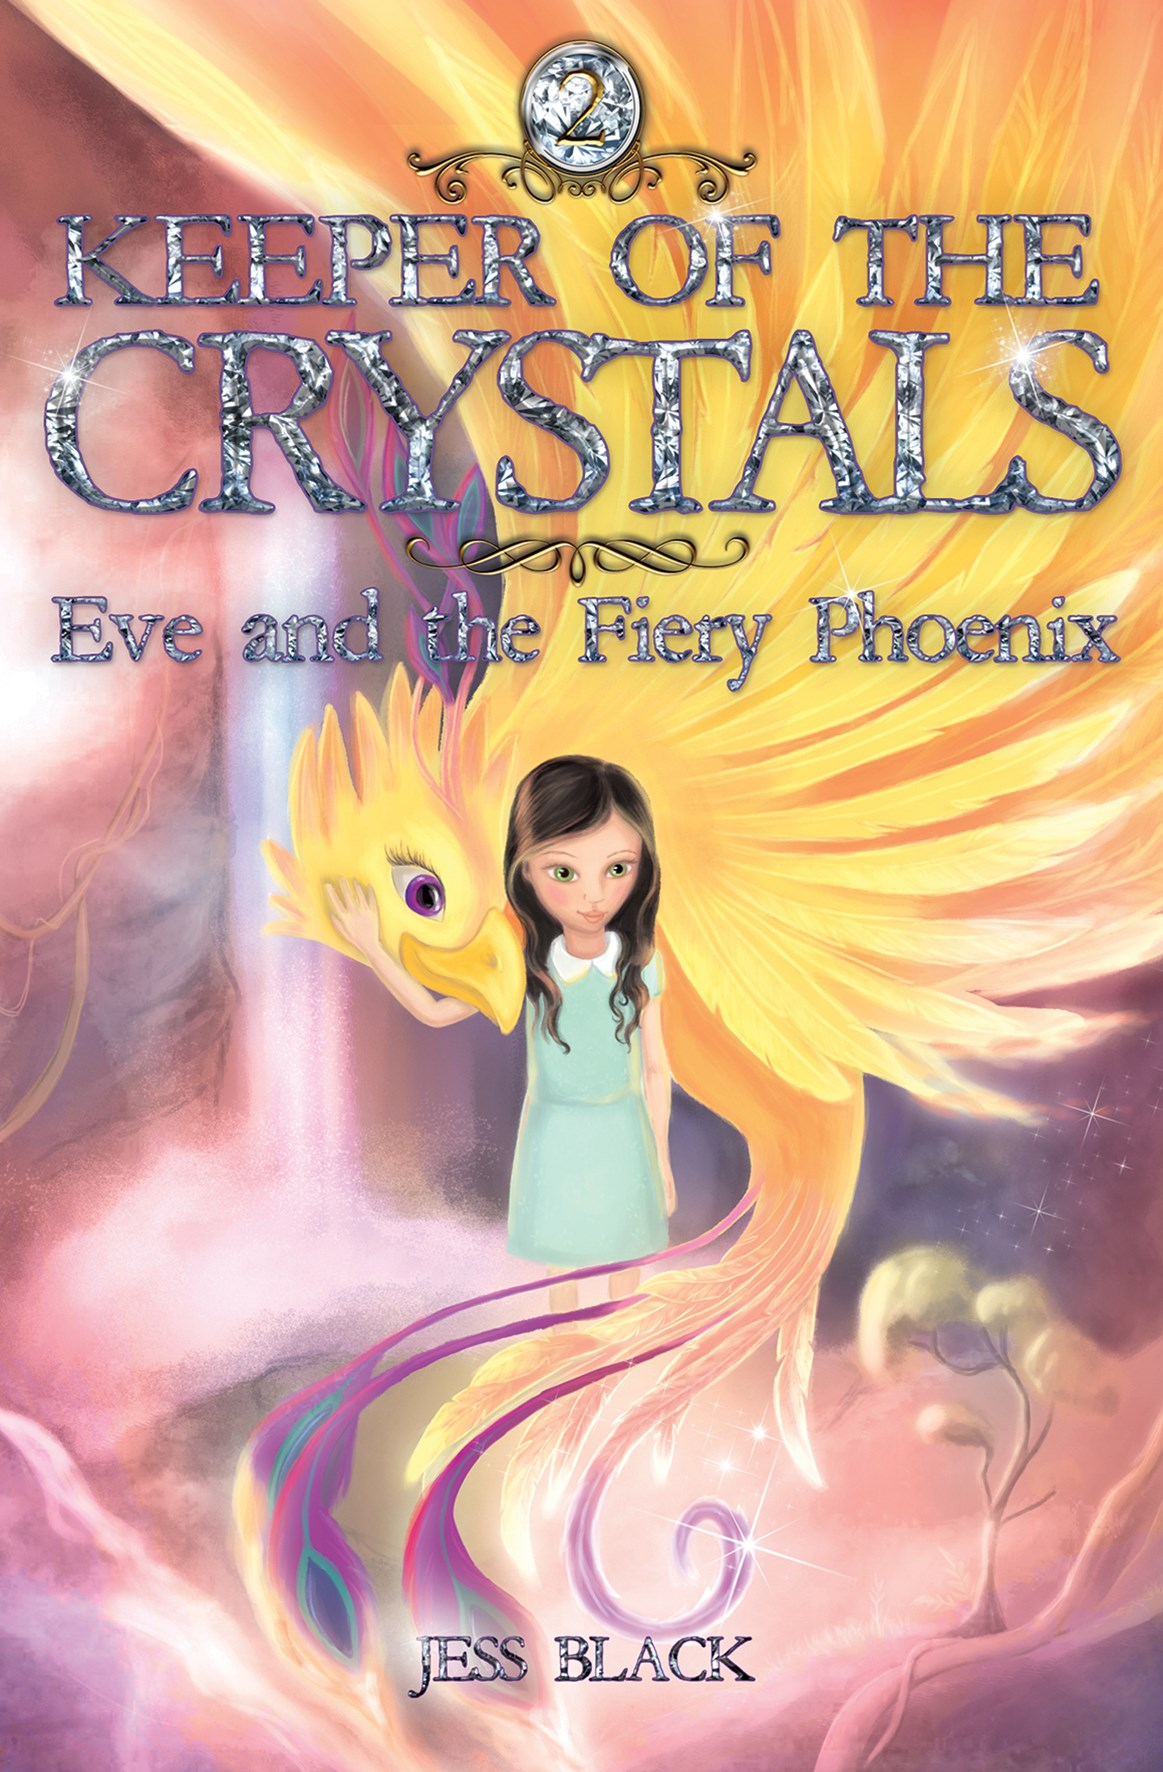 Keeper of the Crystals: #2 Eve and the Fiery Phoenix